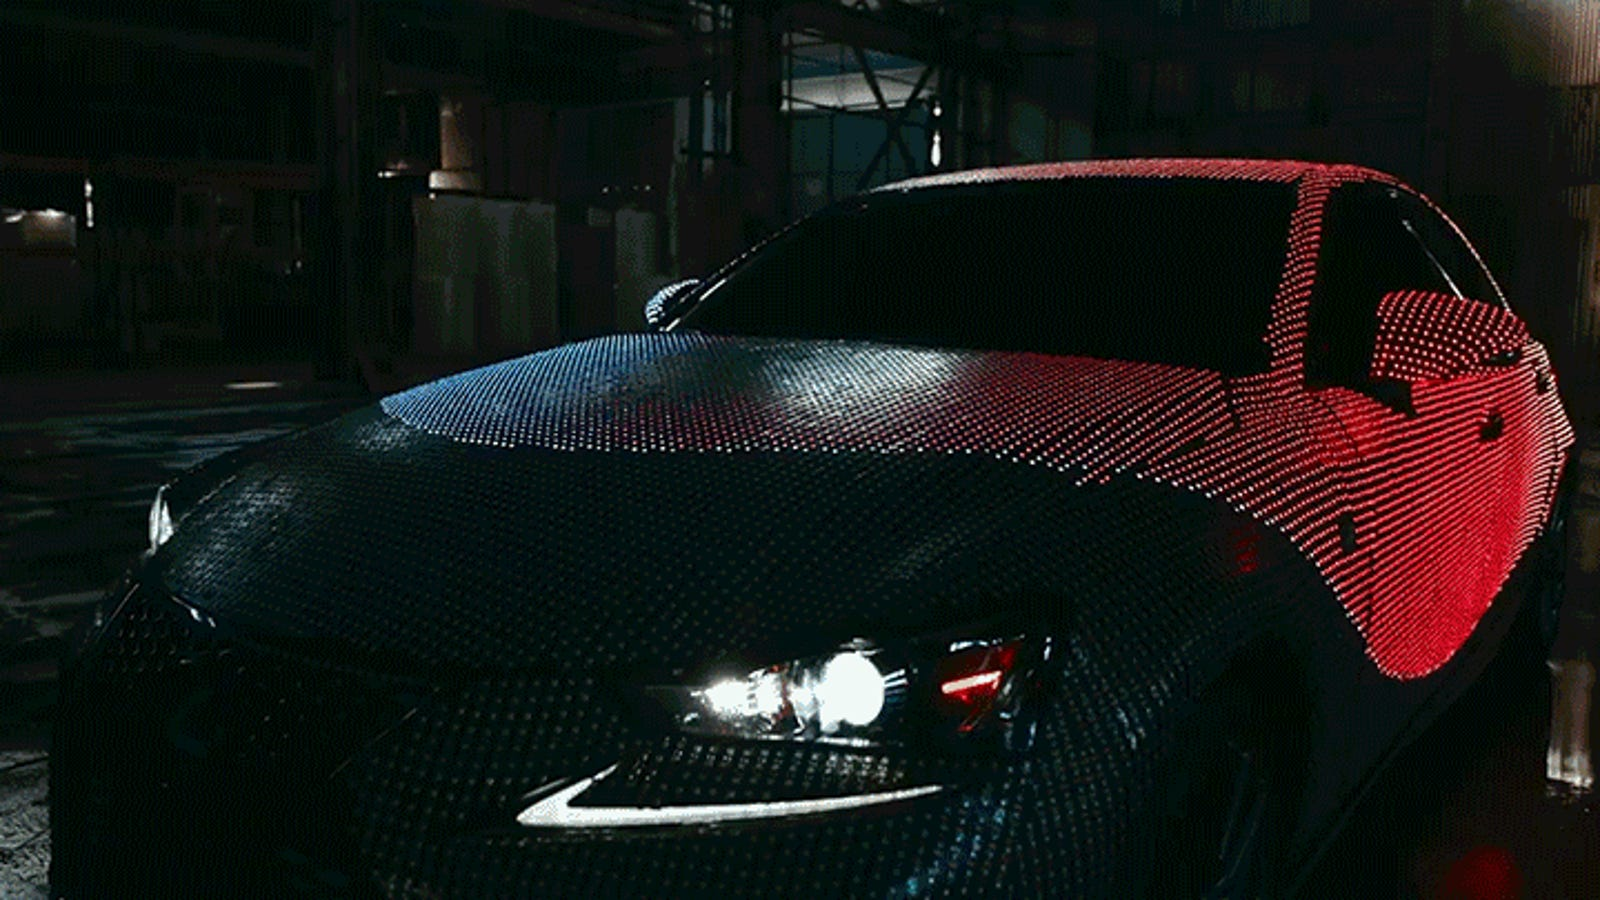 40,000 LEDs Change the Color of This Lexus in a Flash